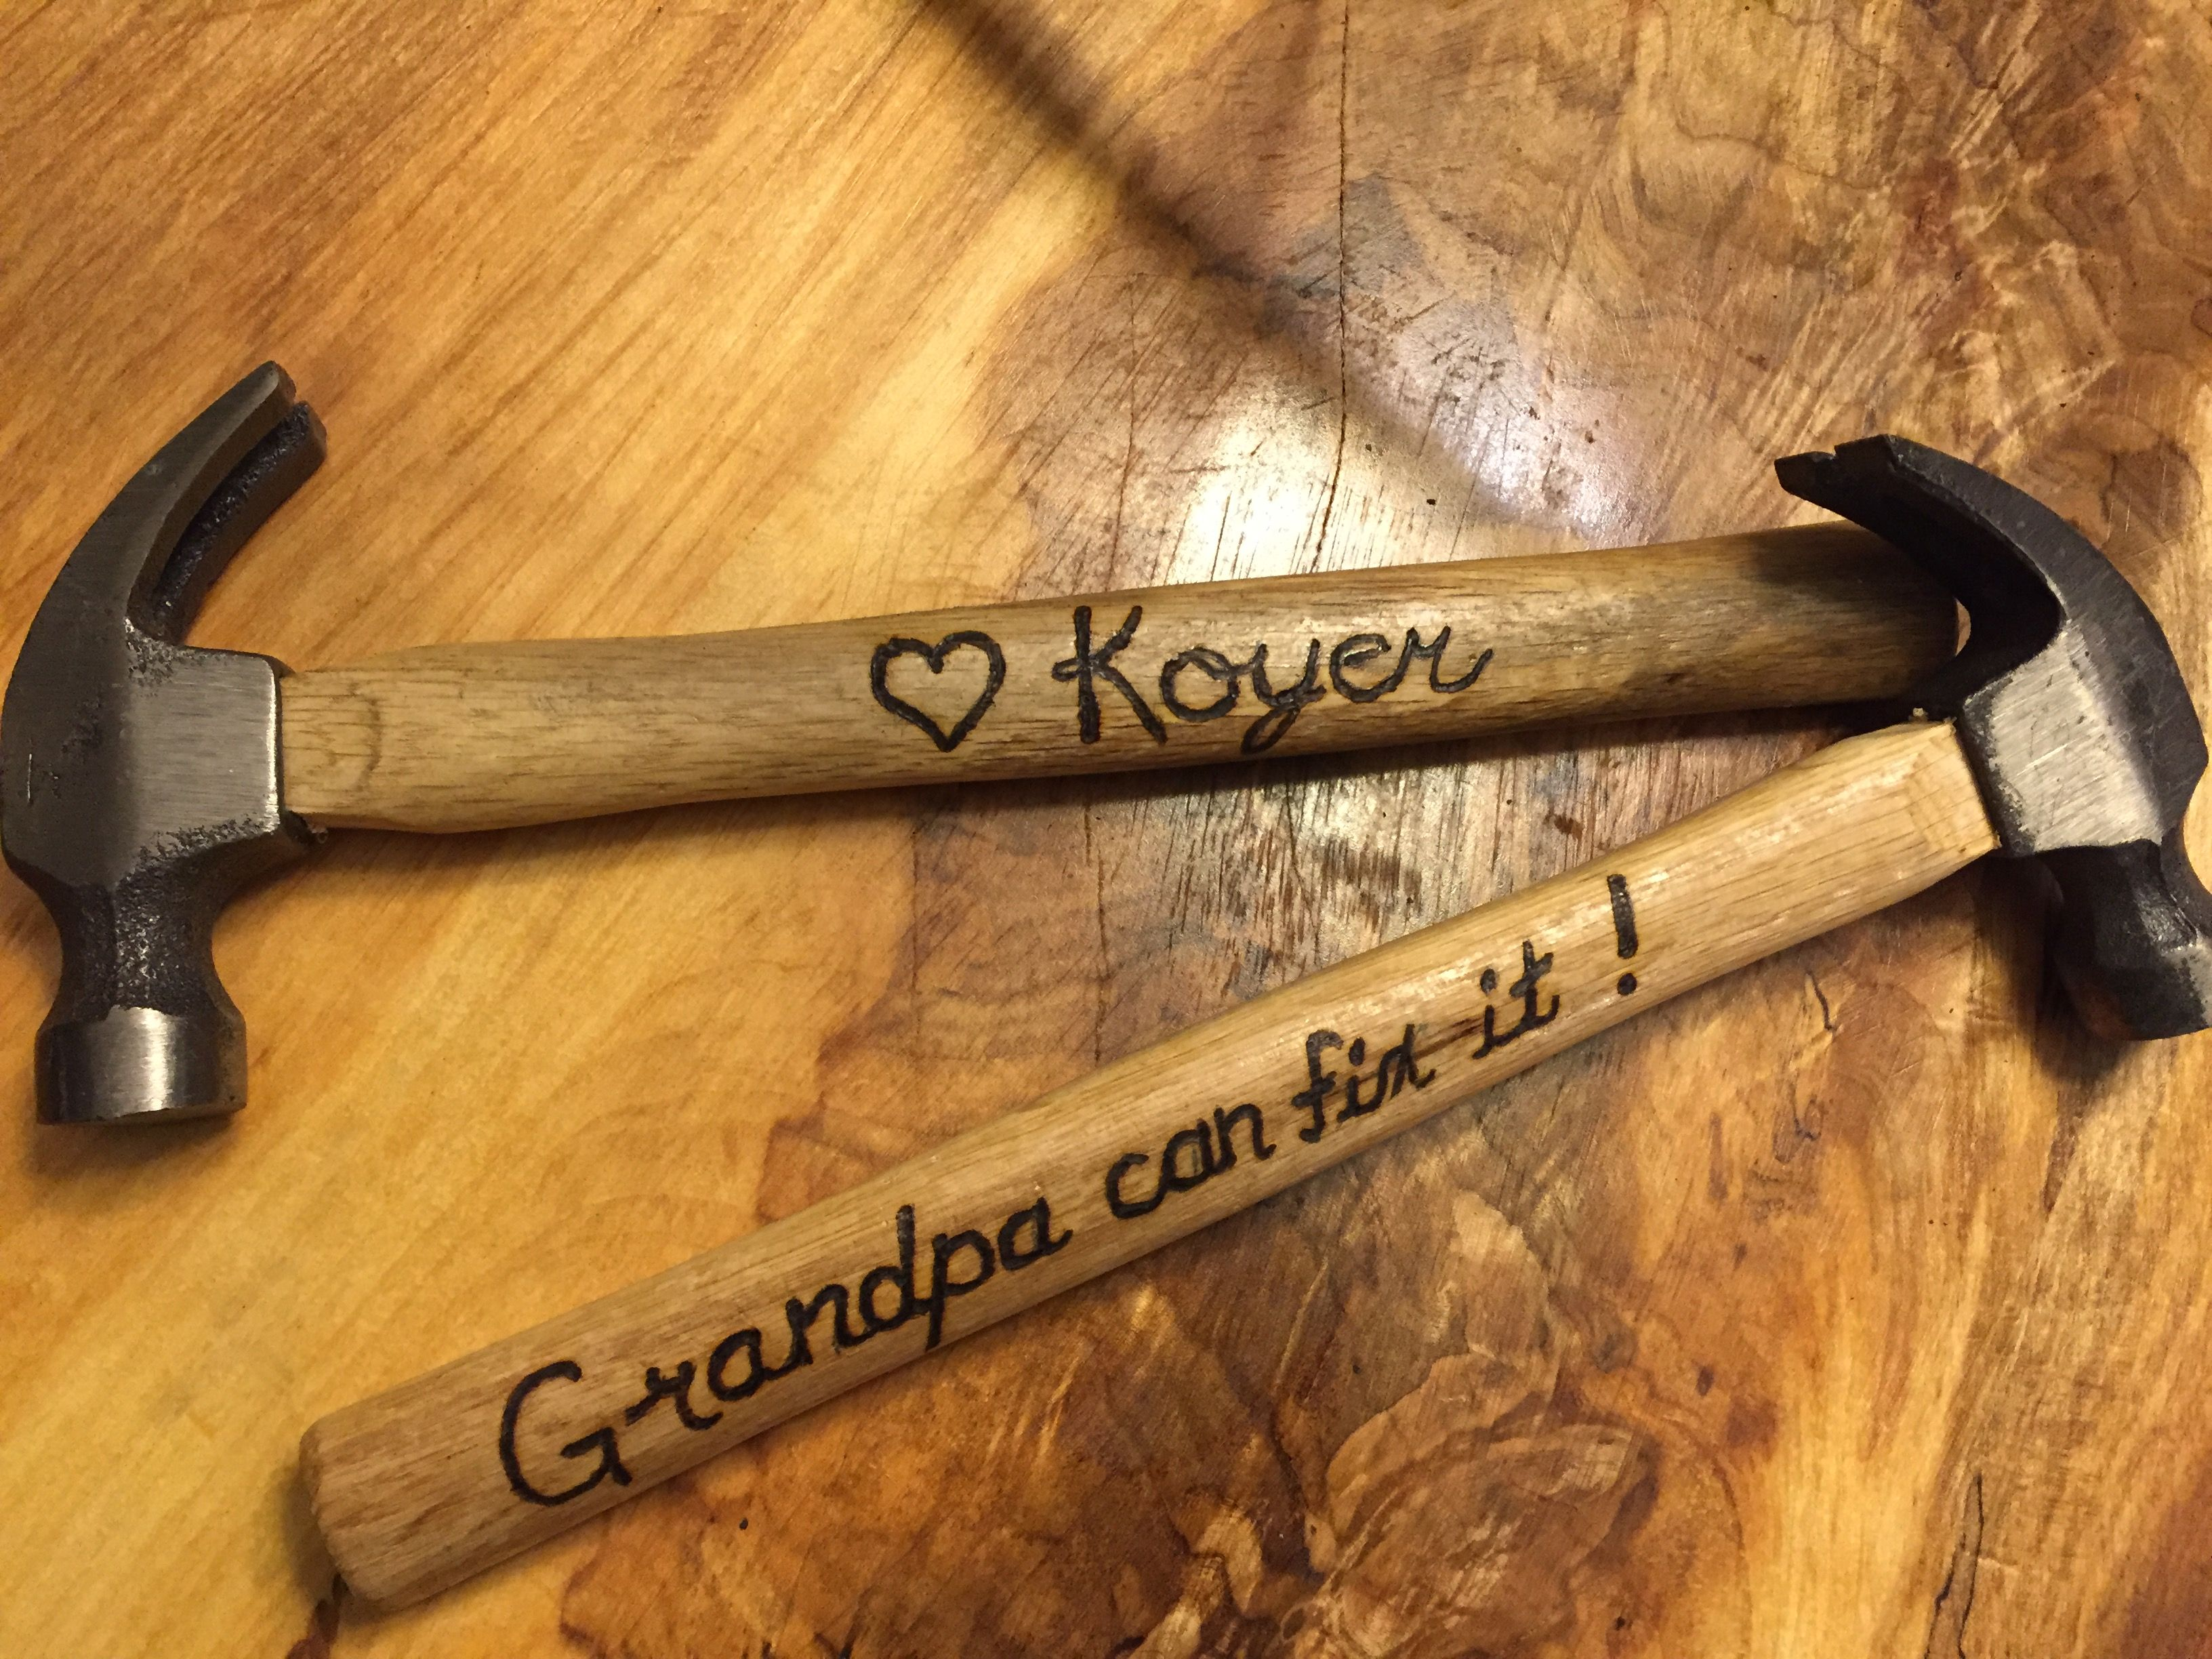 Personalized Hammer, Personalized Tools, Gifts for Dad, Gifts for Men, Etched Gifts